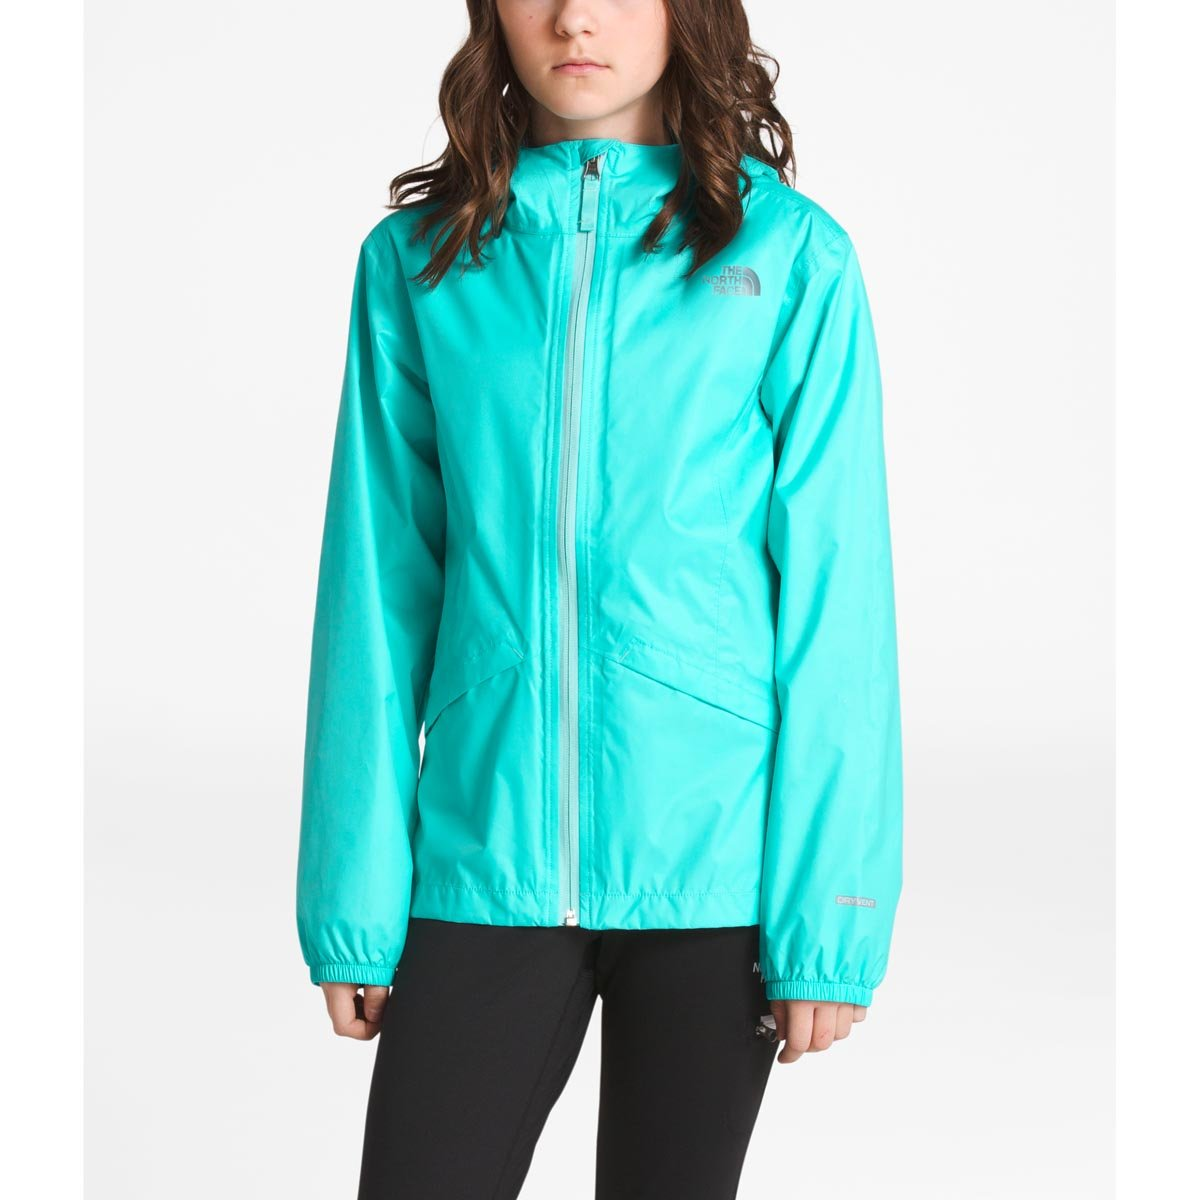 The North Face Girl's Zipline Jacket - Mint Blue - M